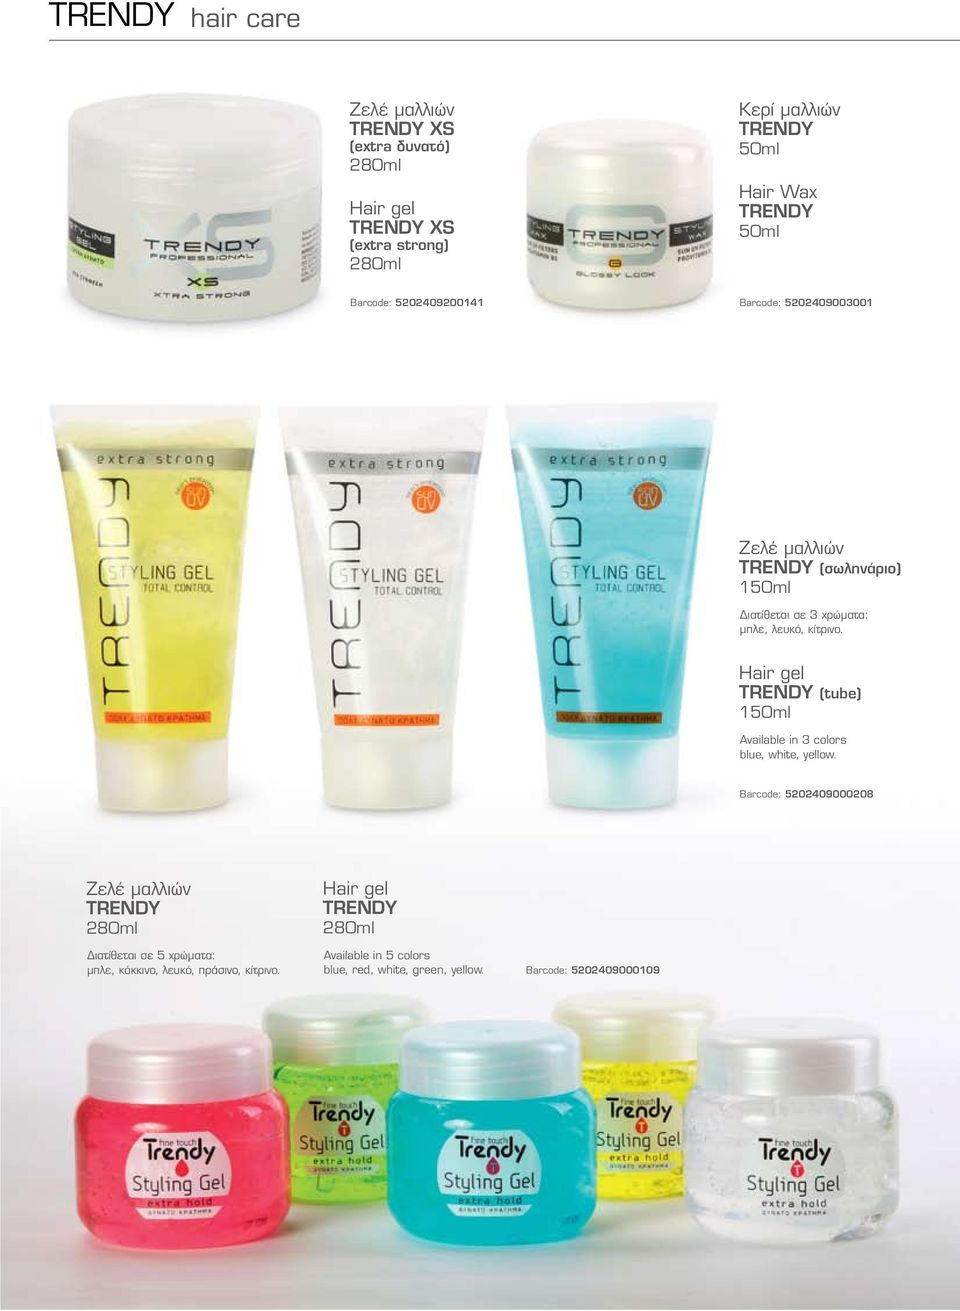 Hair gel TRENDY (tube) 150ml Available in 3 colors blue, white, yellow.